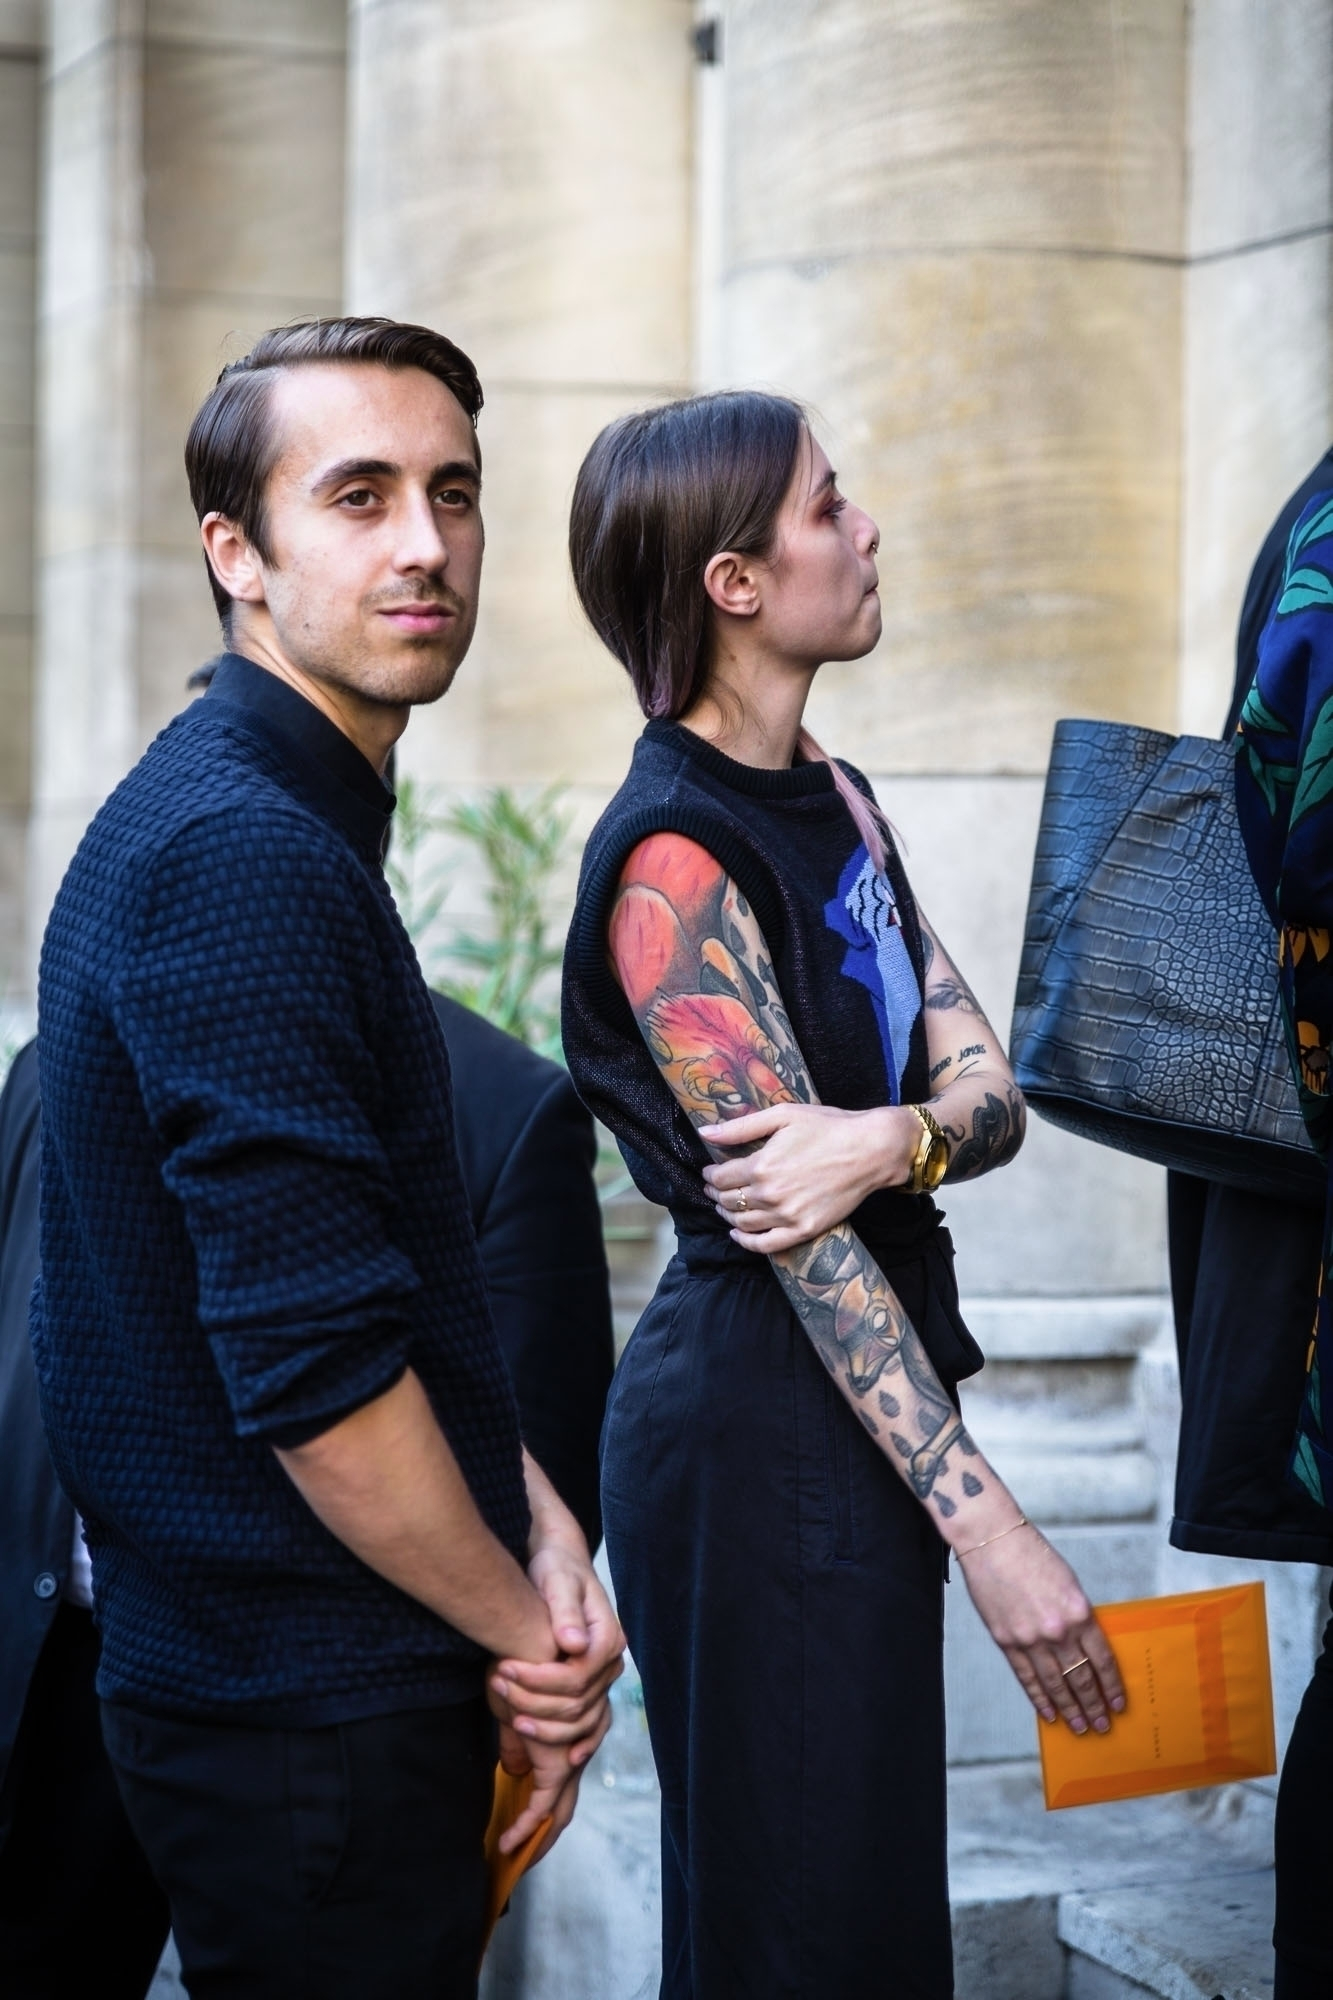 PARIS FASHION WEEK - Day 01 BTS - spoonxello | ello